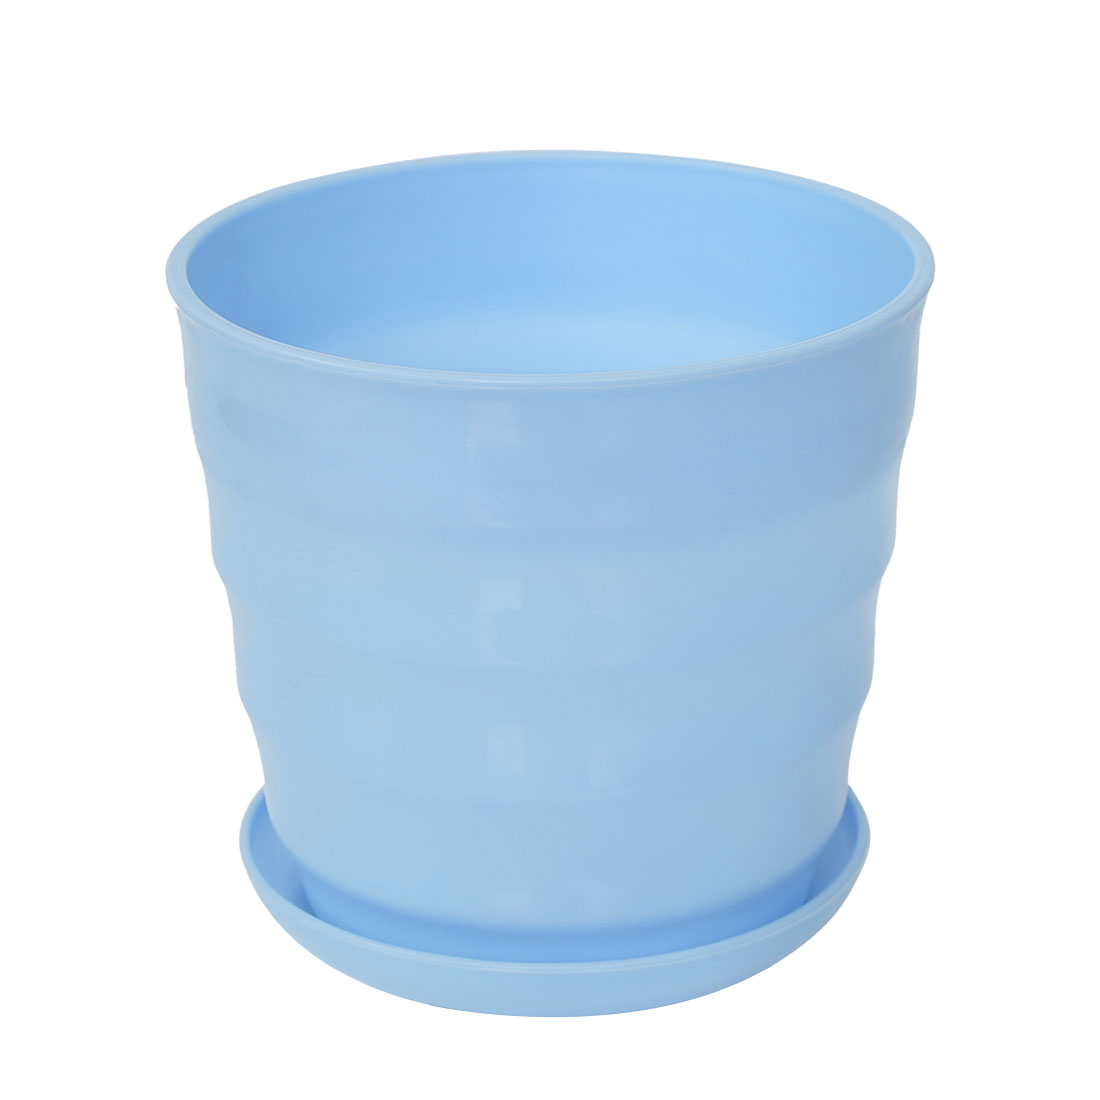 Home Patio Office Plastic Stripe Pattern Plant Planter Flower Pot Sky Blue